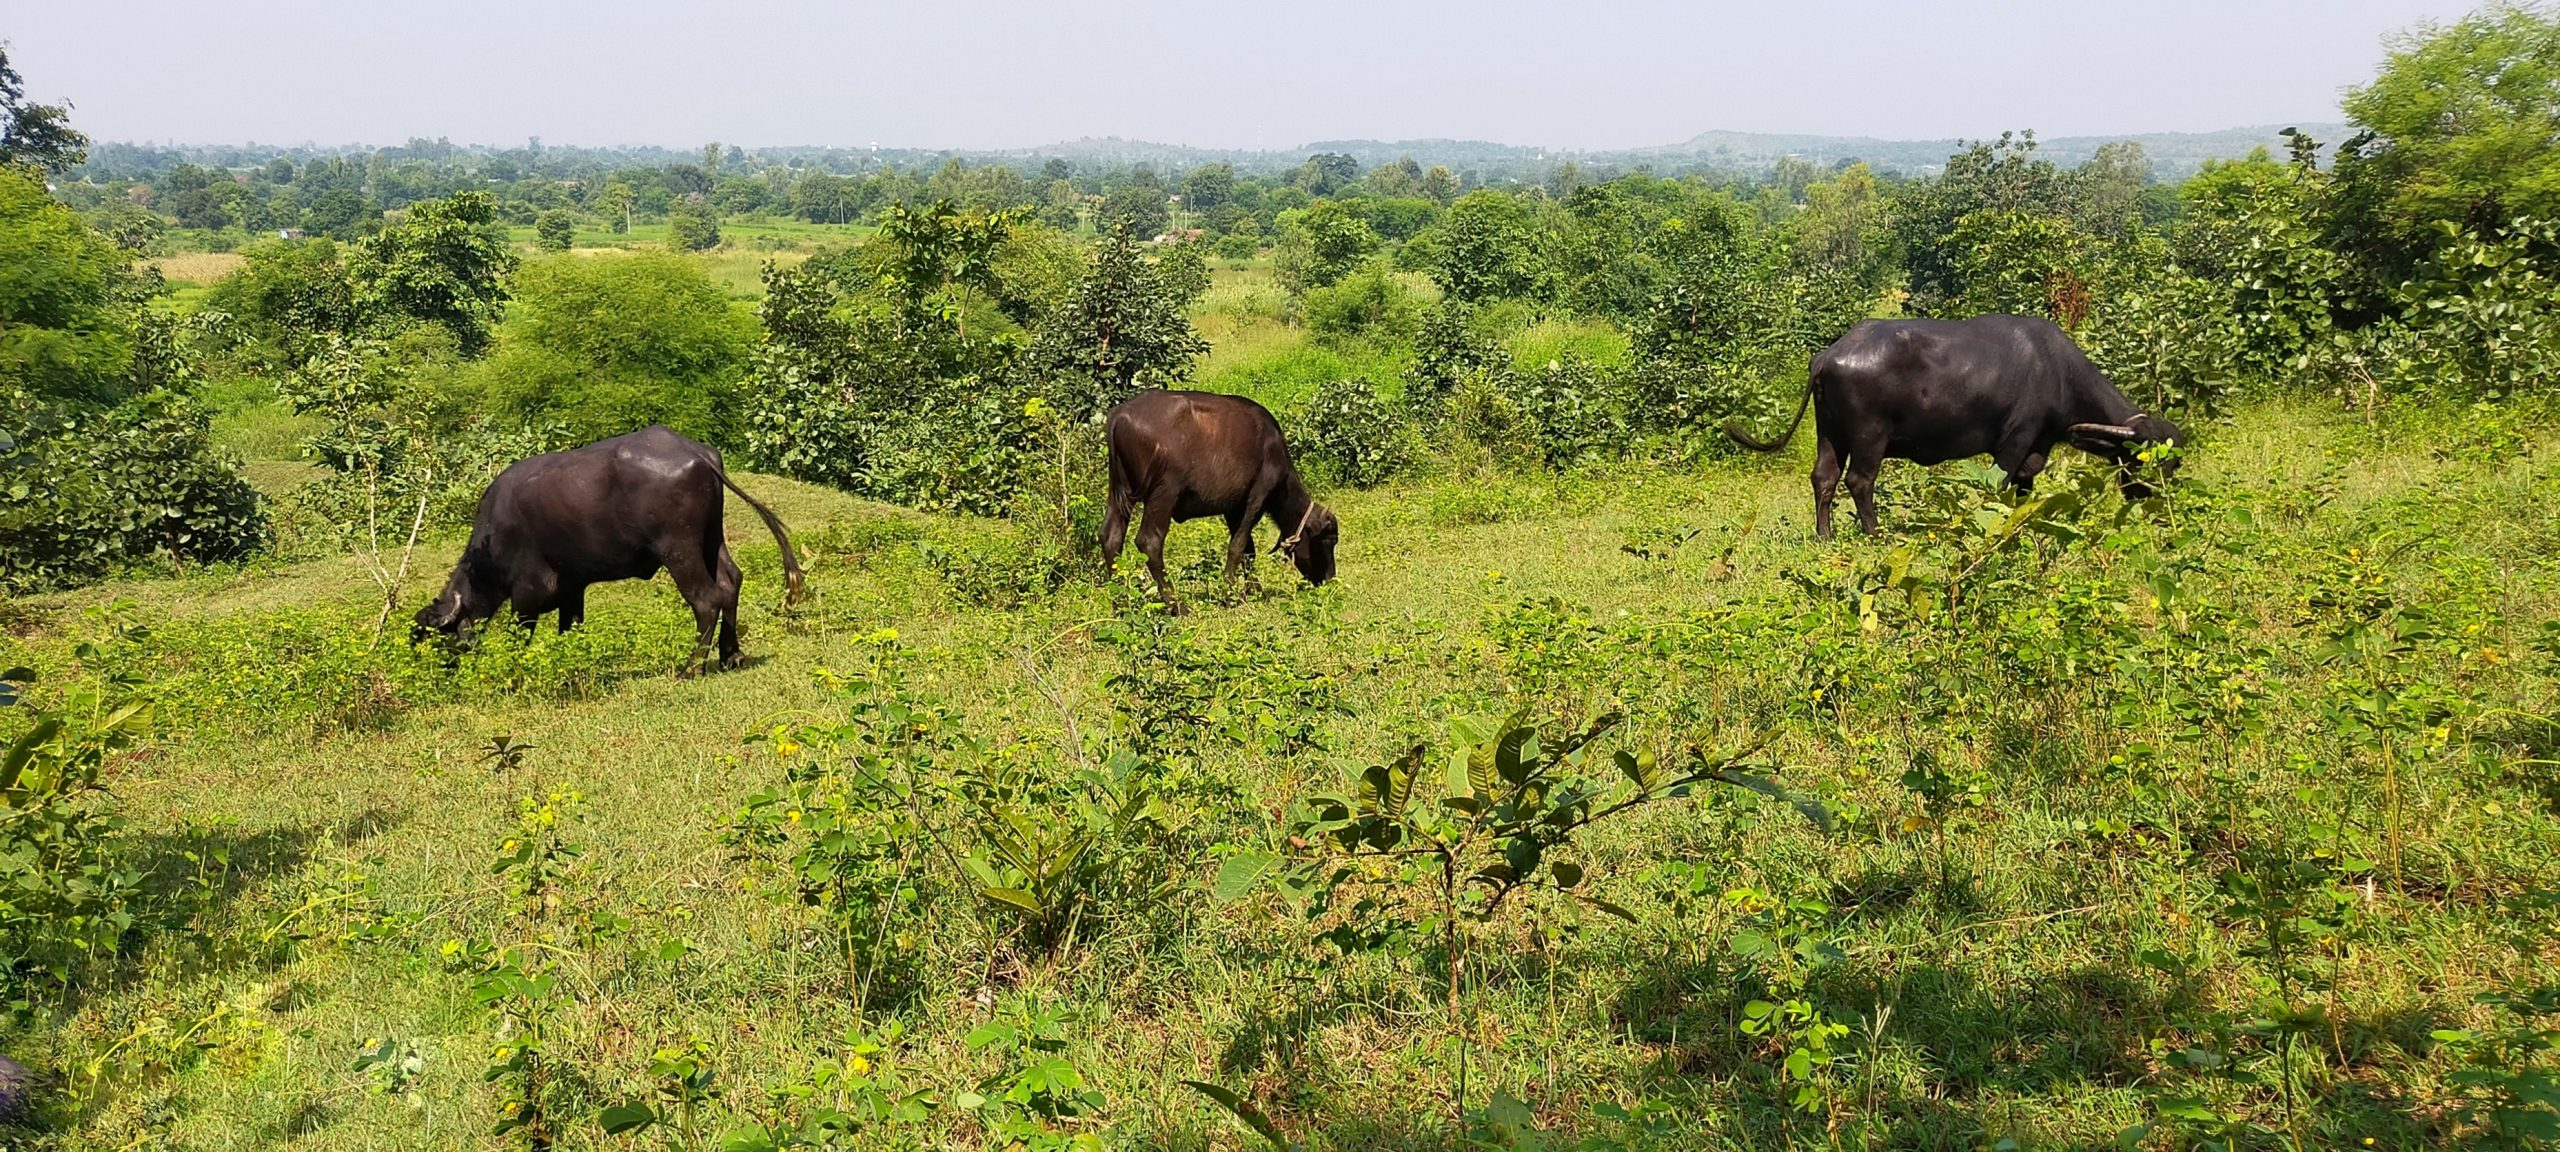 Buffalo grazing the grass from the forest